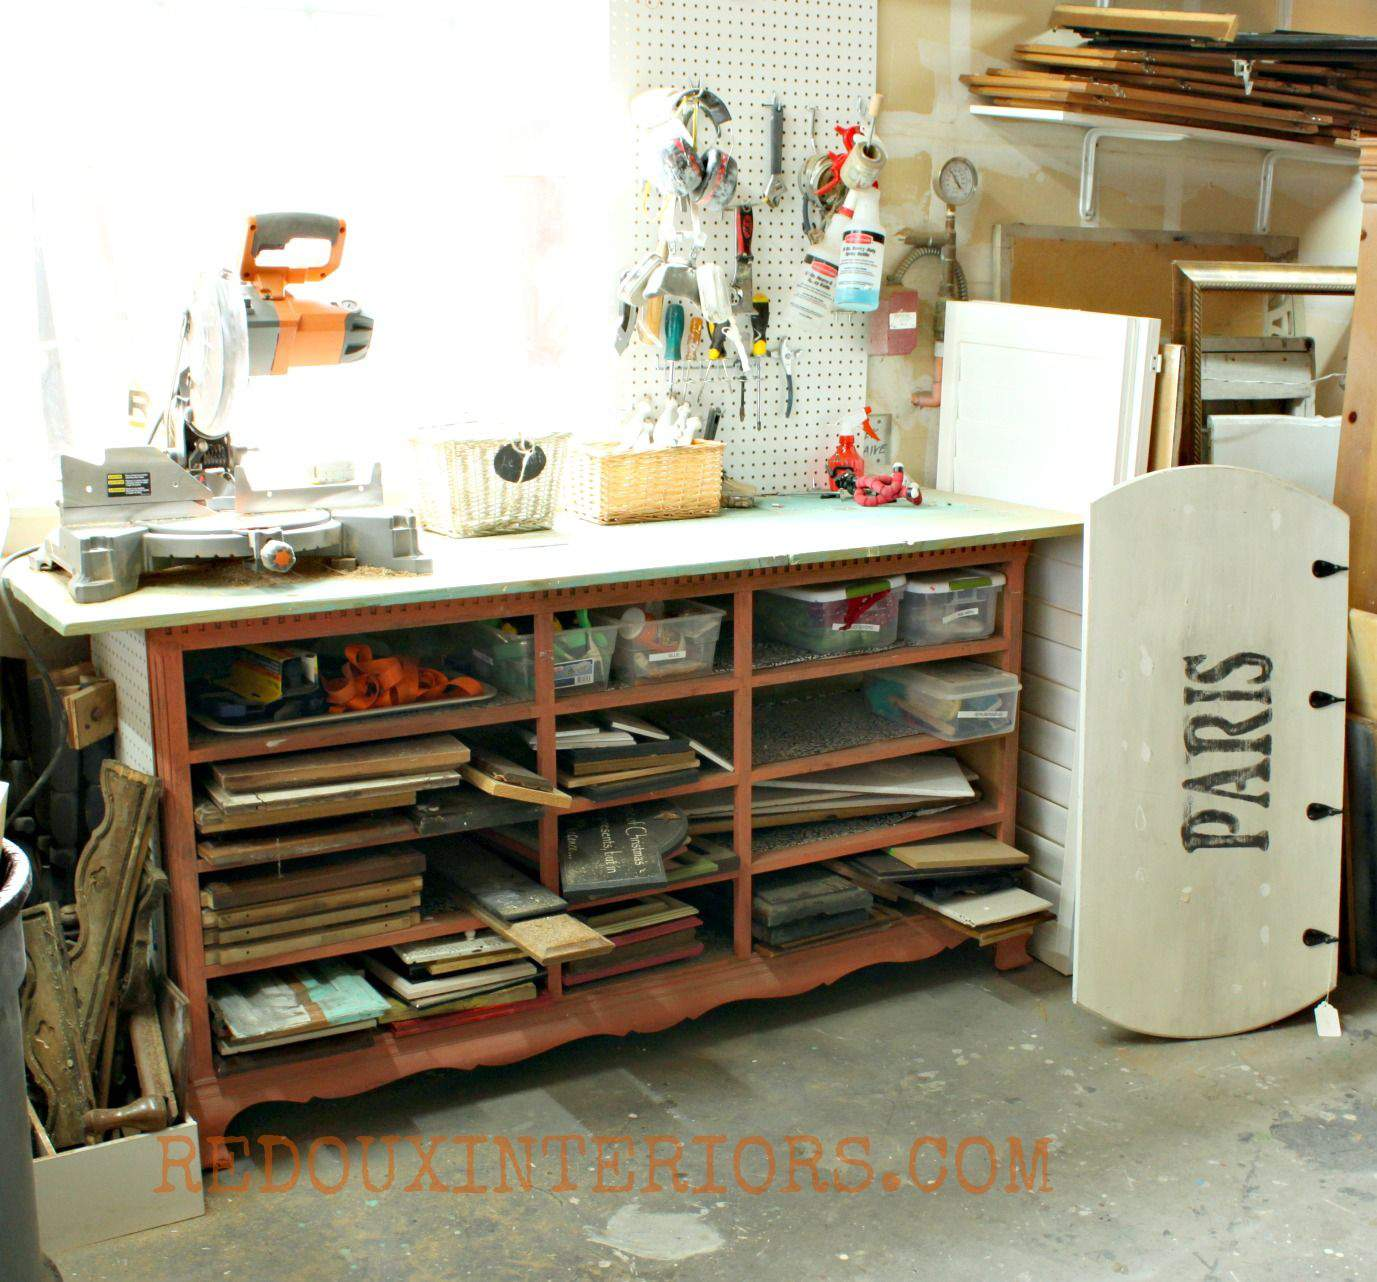 Five Clever Garage Storage Ideas for a Clutter-Free Garage